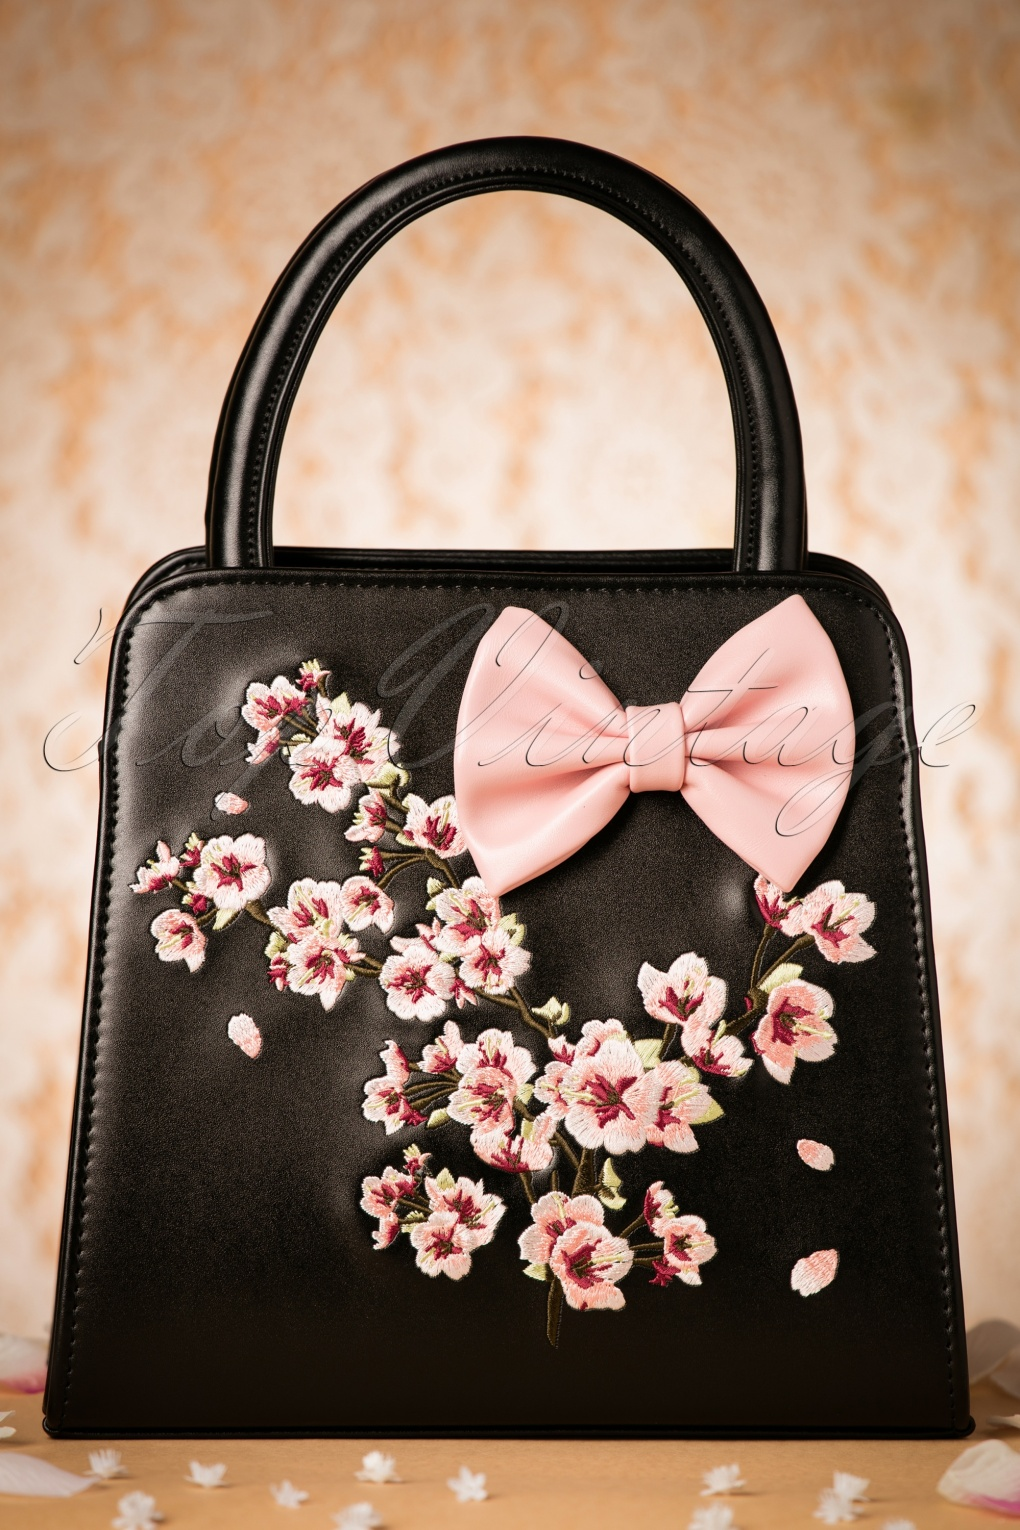 Retro Handbags, Purses, Wallets, Bags 50s Carla Blossom Bow Handbag in Black and Pink £39.54 AT vintagedancer.com